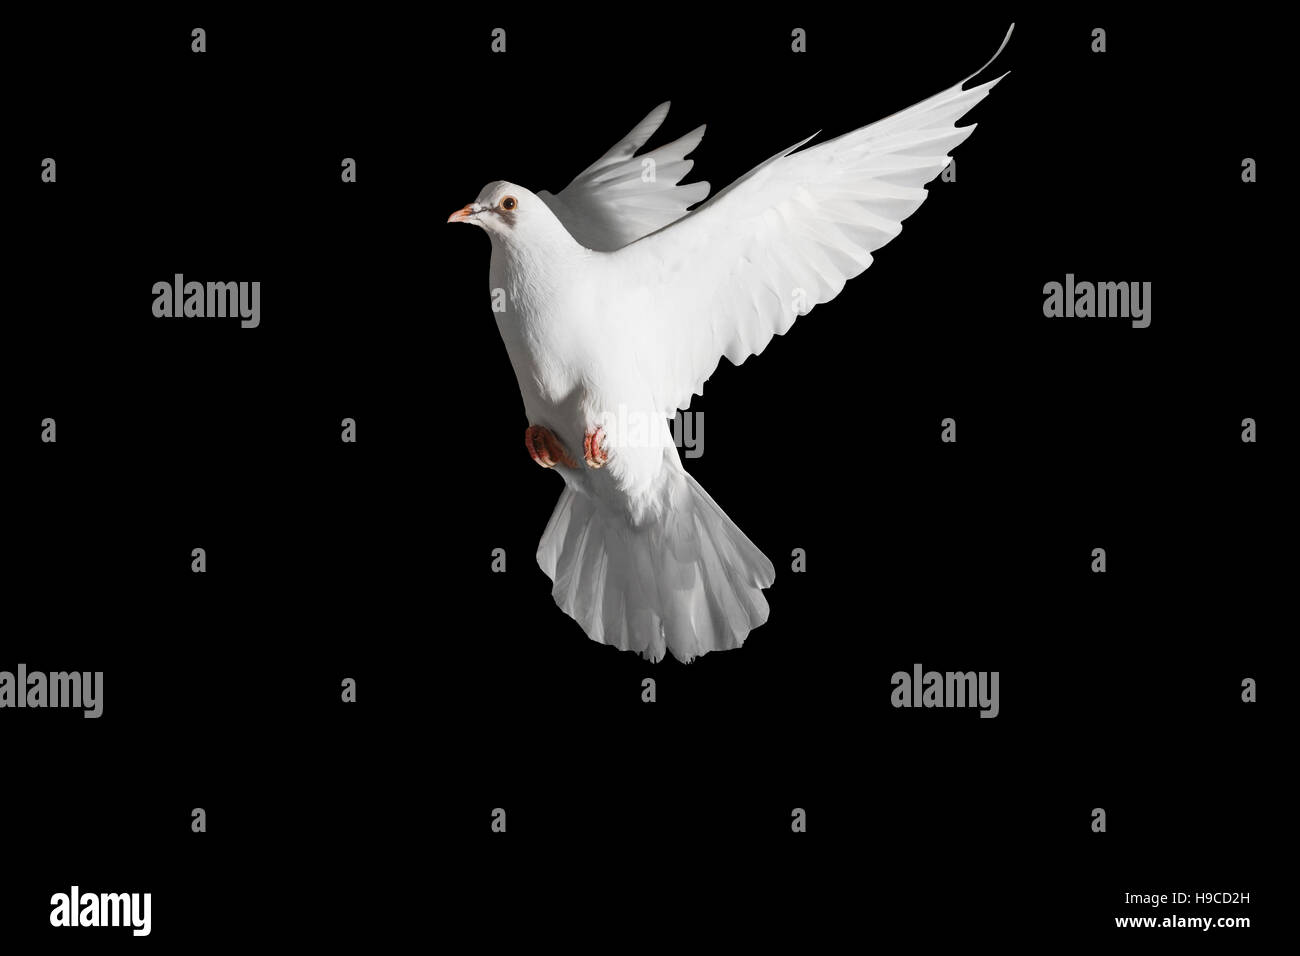 Homing Pigeon With Spread Wings Isolated On Blackpostal Dove